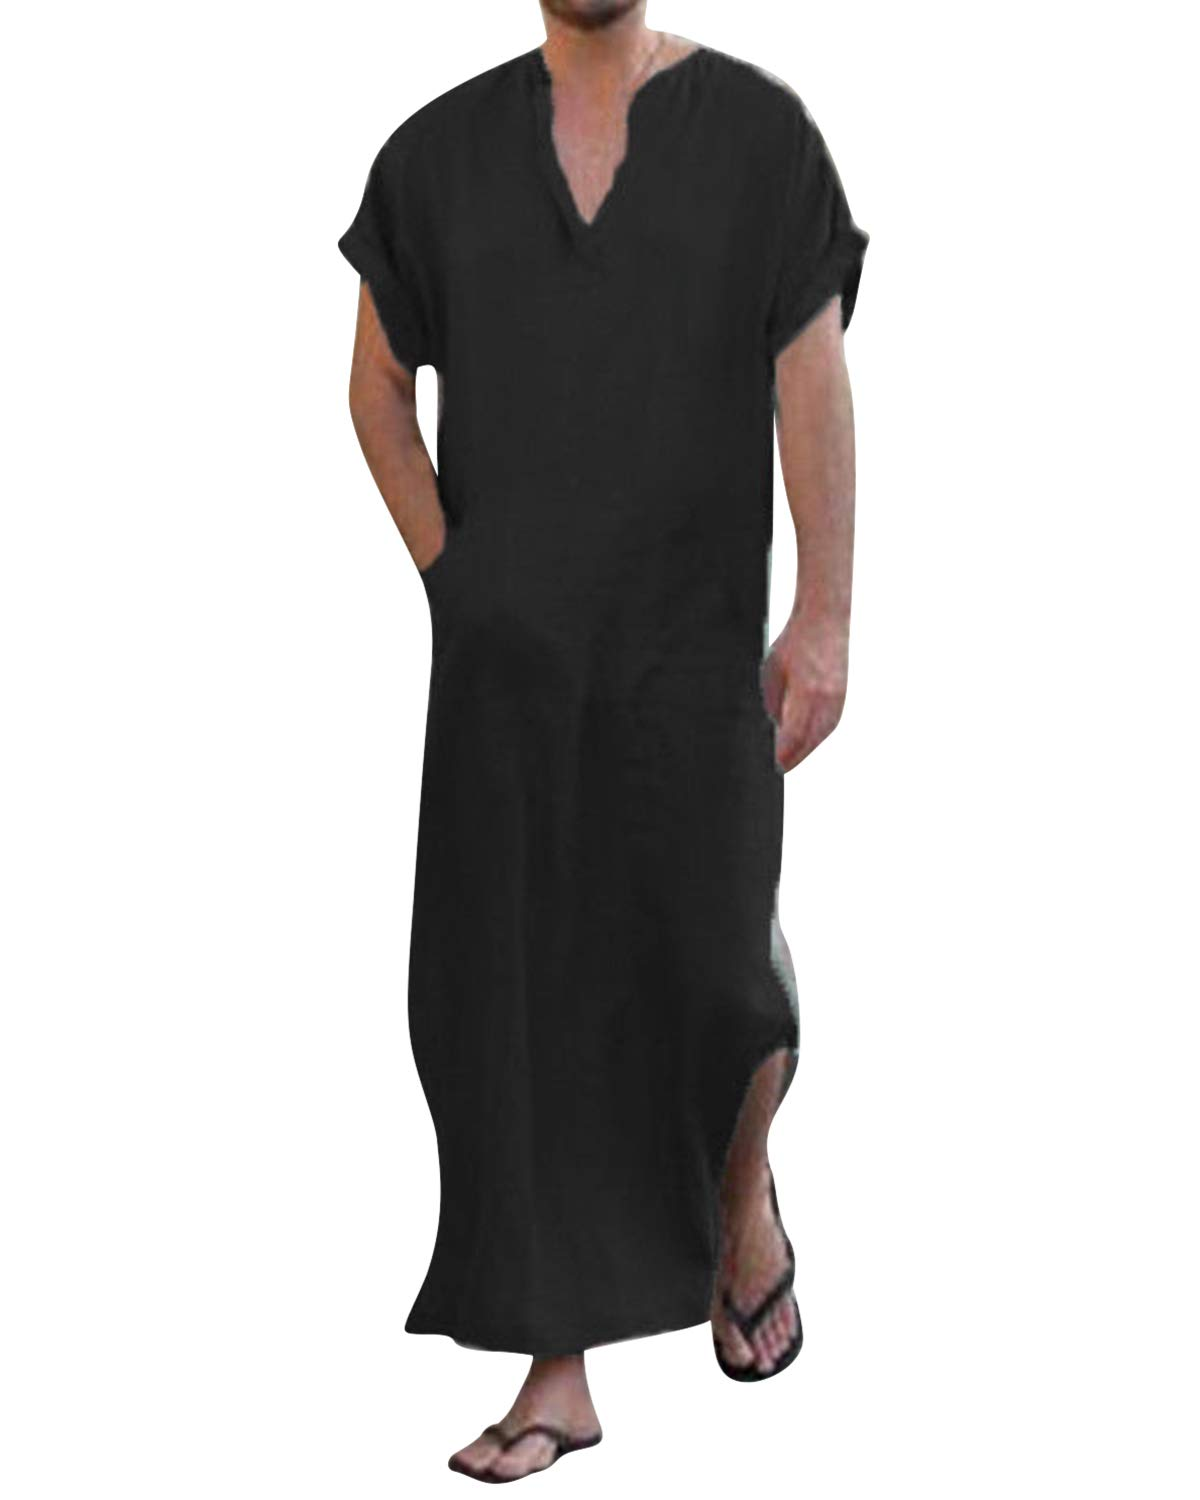 Jacansi Men's Loose Kaftan Cotton Side Split Dubai Indian Arabic Ethnic Robes Black M by Jacansi